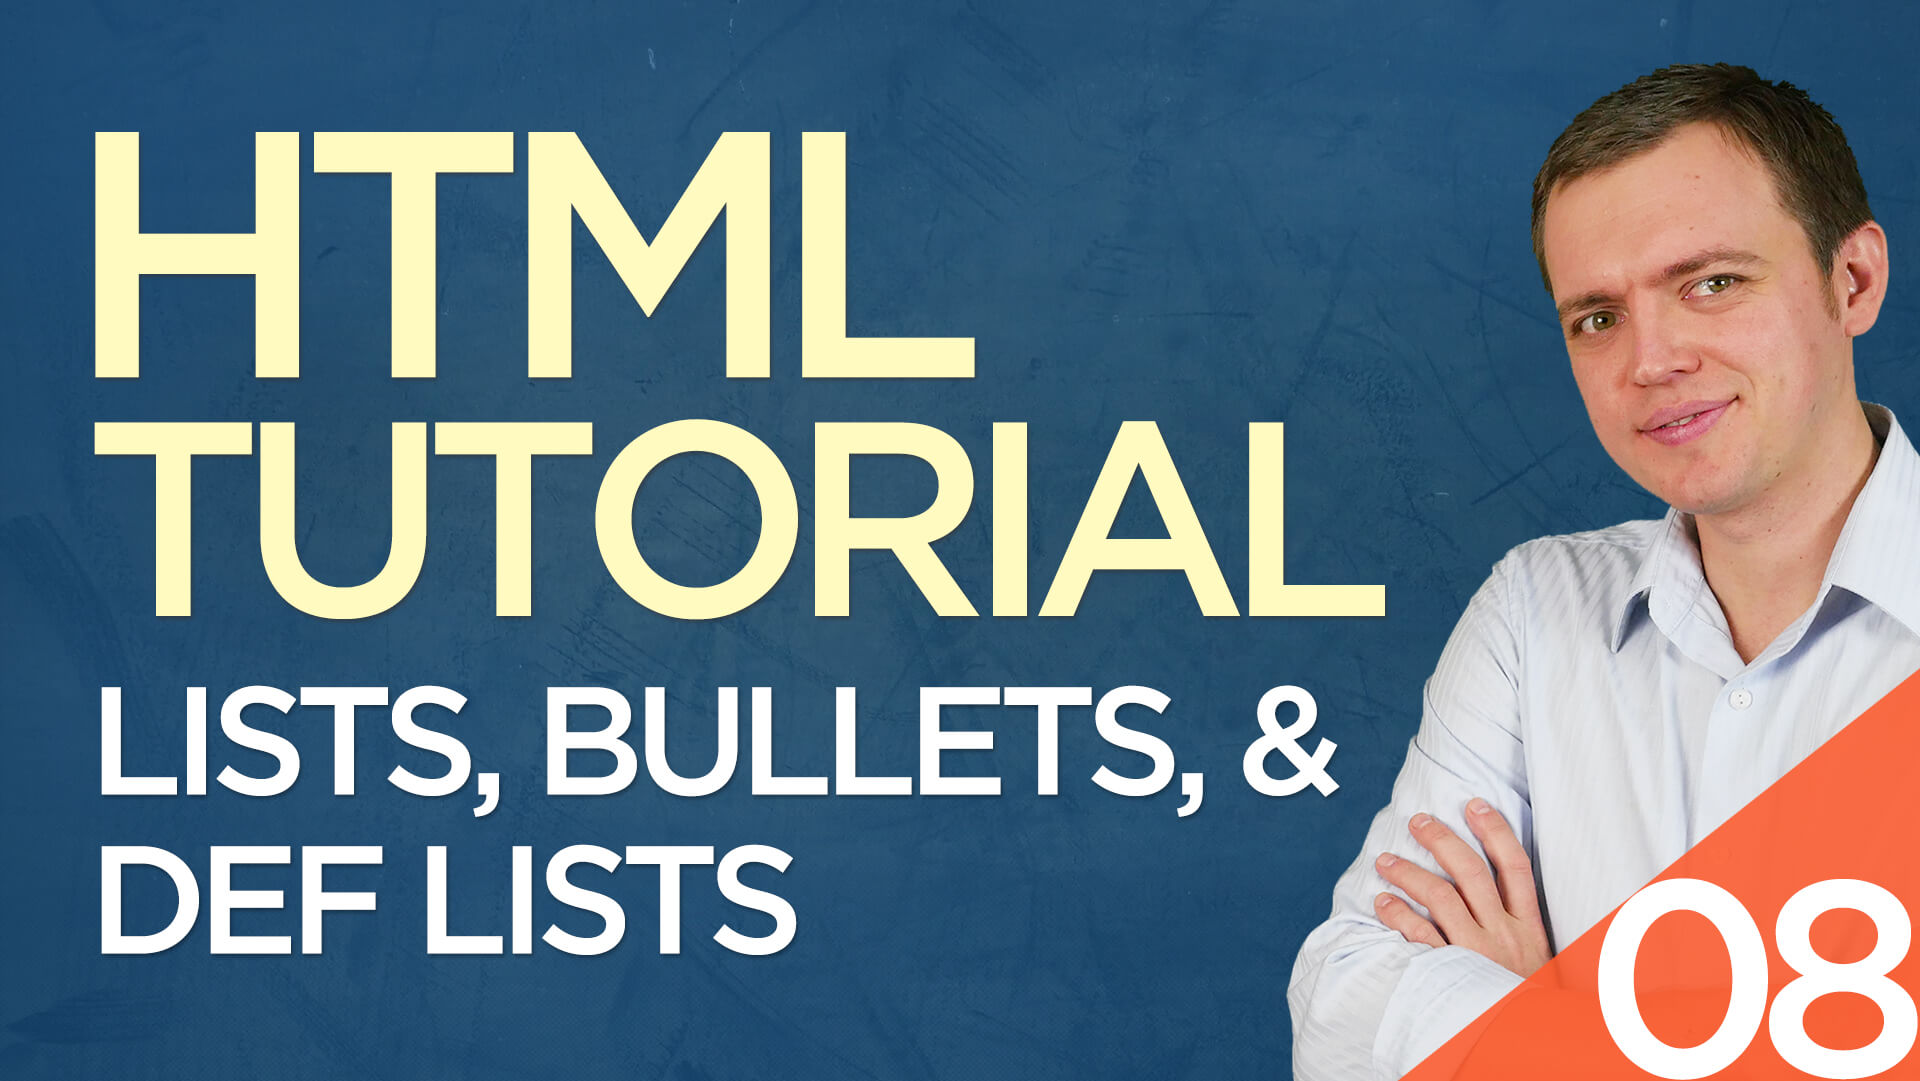 HTML Tutorial for Beginners: 08 Lists, Bullets, Unordered Lists, & Definition Lists